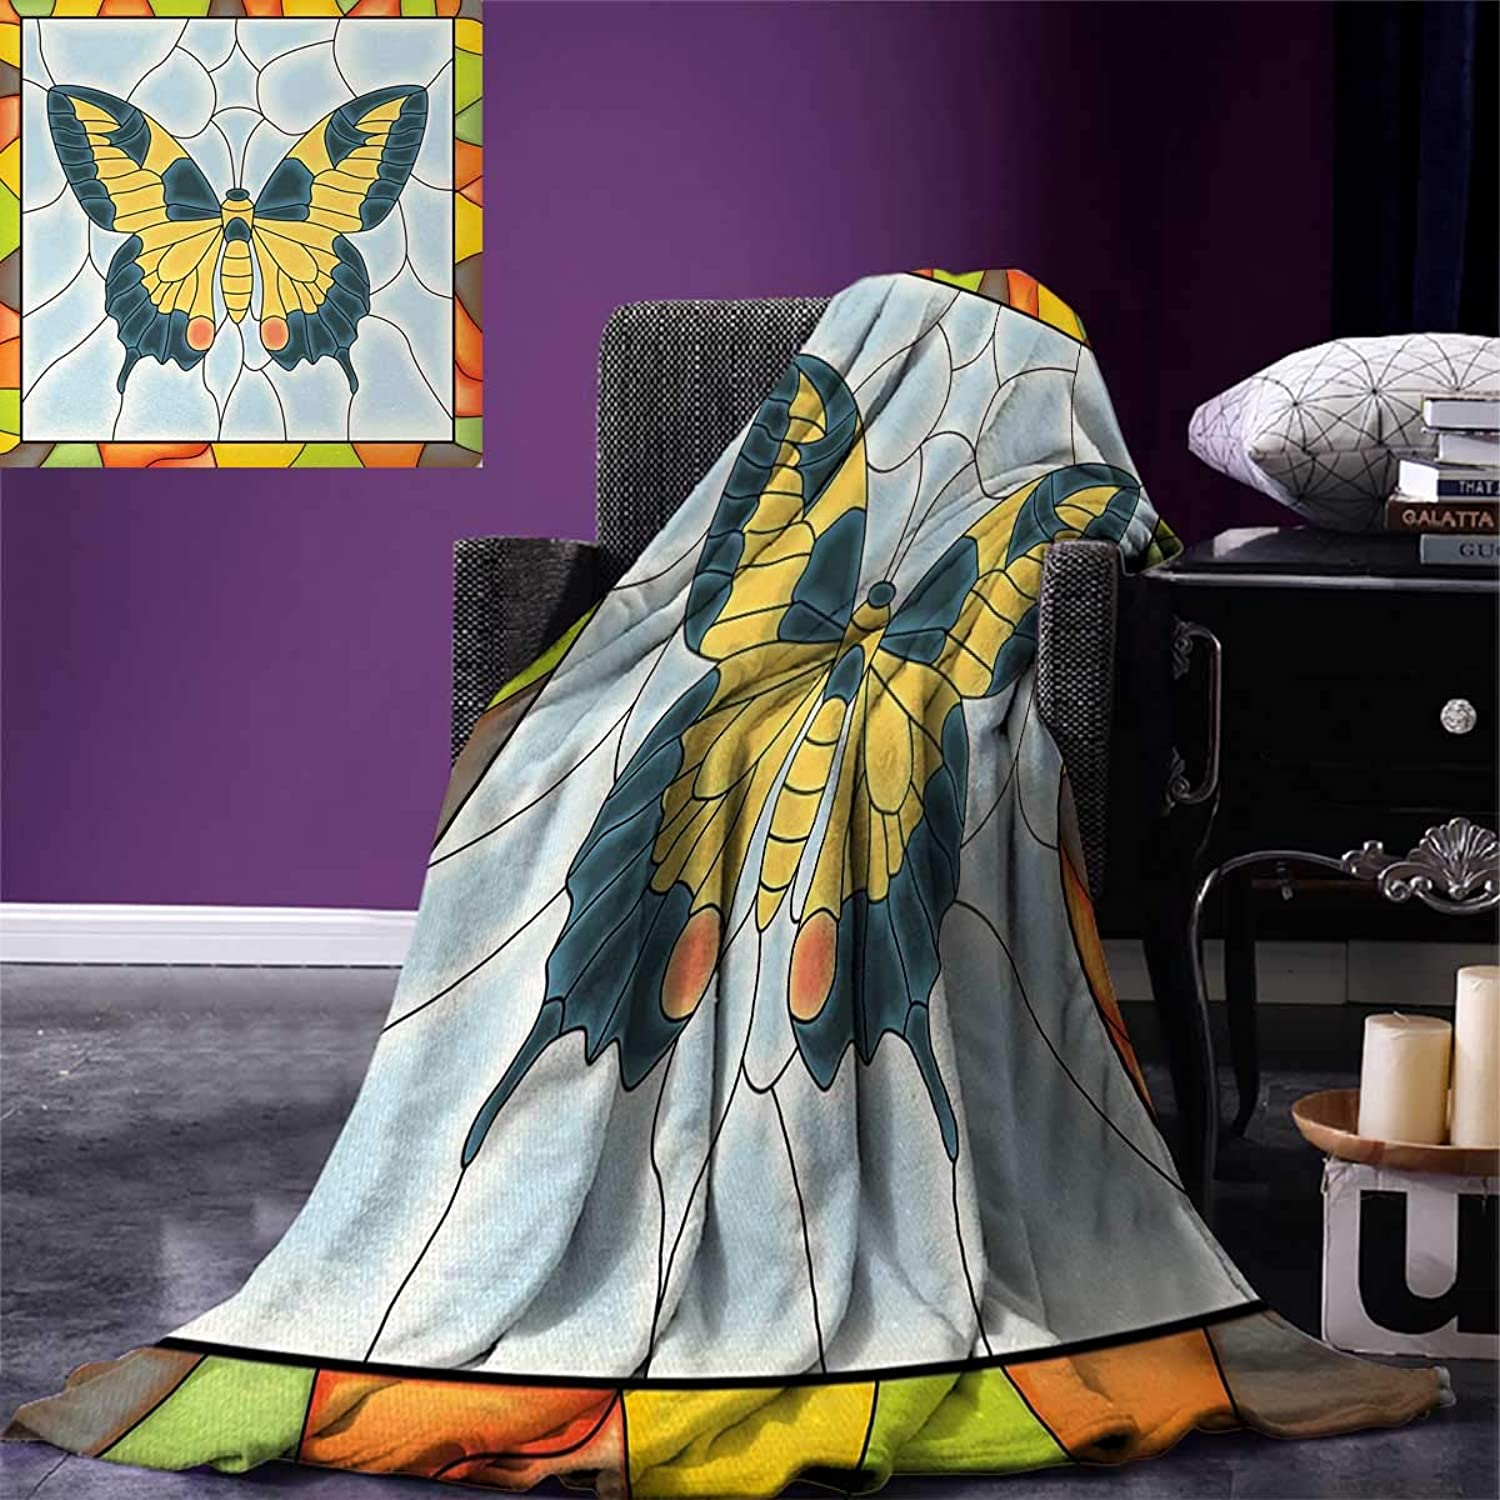 Anniutwo Butterflies Travel Throw Blanket Butterfly in StainedGlass Window Frame Wing Spring Garden Illustration Velvet Plush Throw Blanket 60 x50  Multicolor